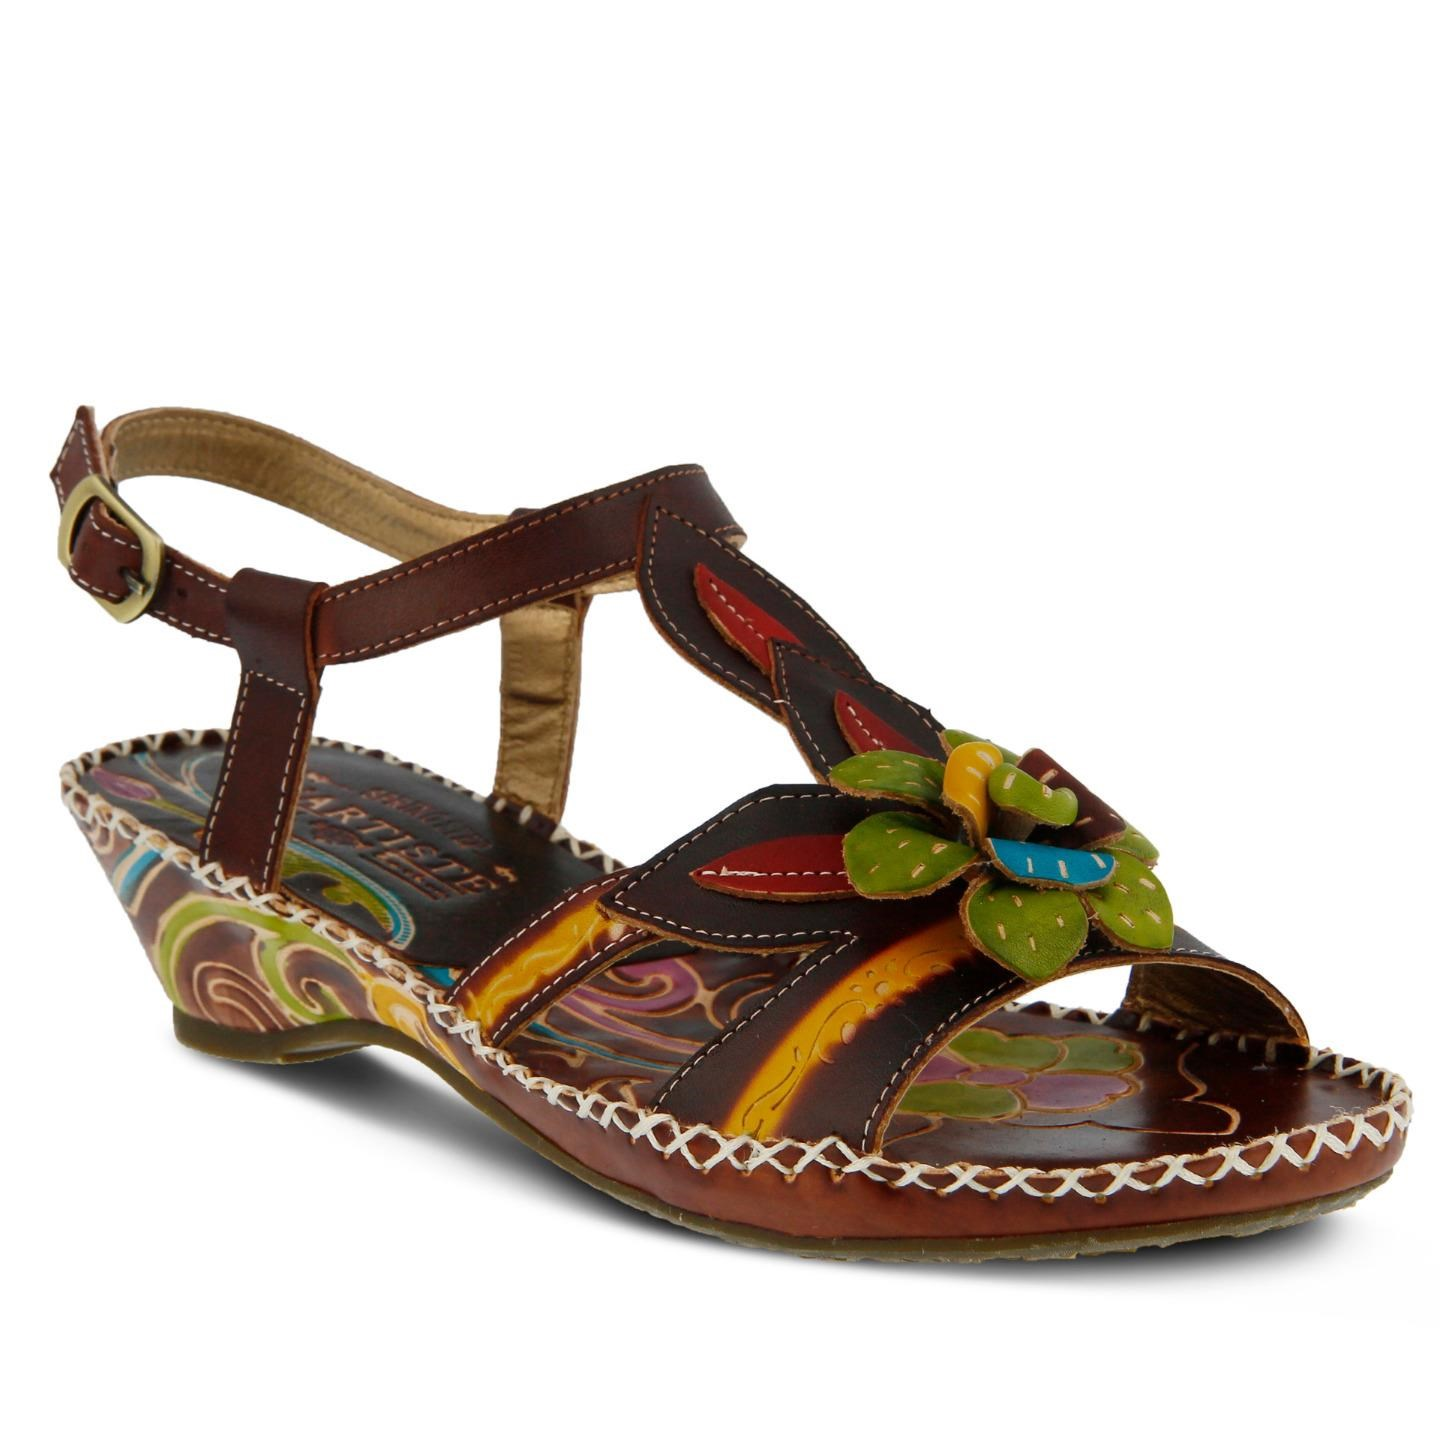 L'Artiste Poolside By Spring Step Brown Leather Sandal 37 EU / 7 US Women